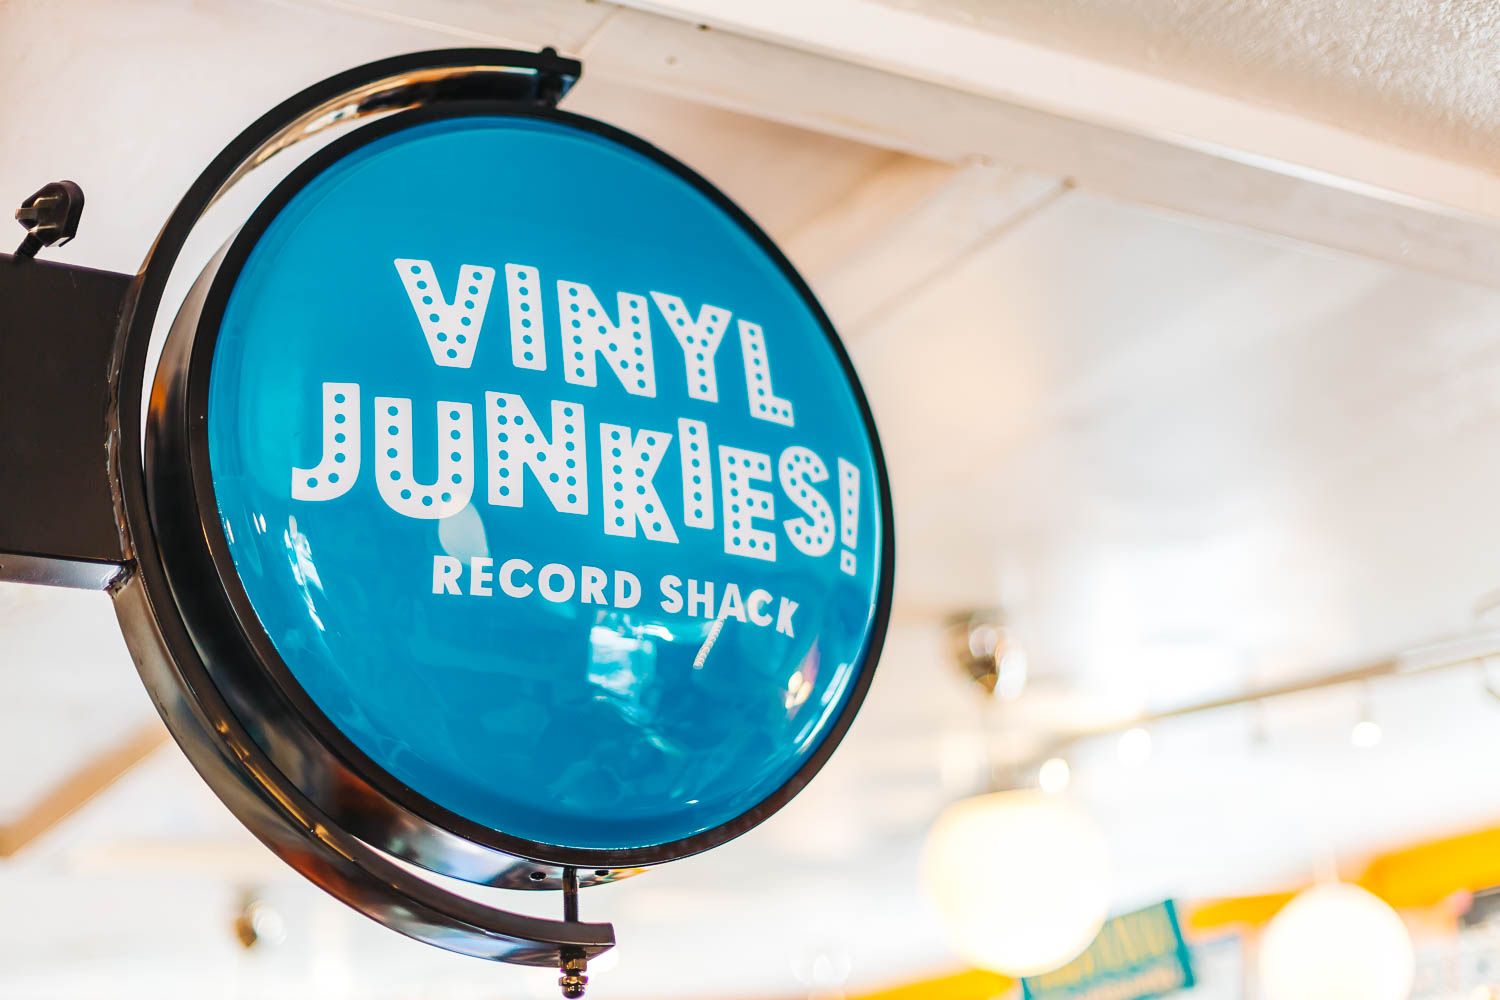 VINYL JUNKIES SOUTH PARK